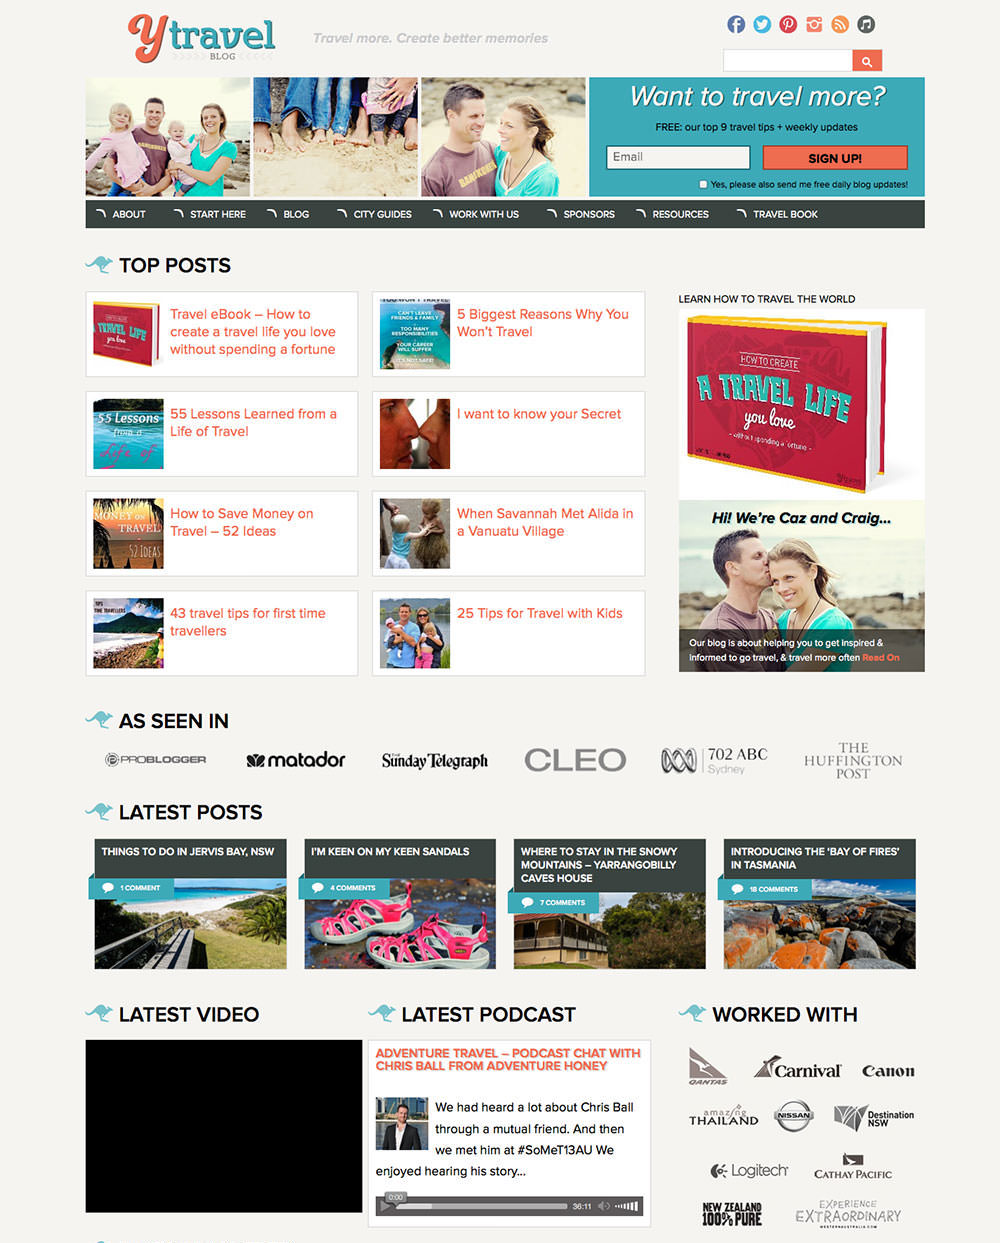 ytravelblog-redesign-bad-design